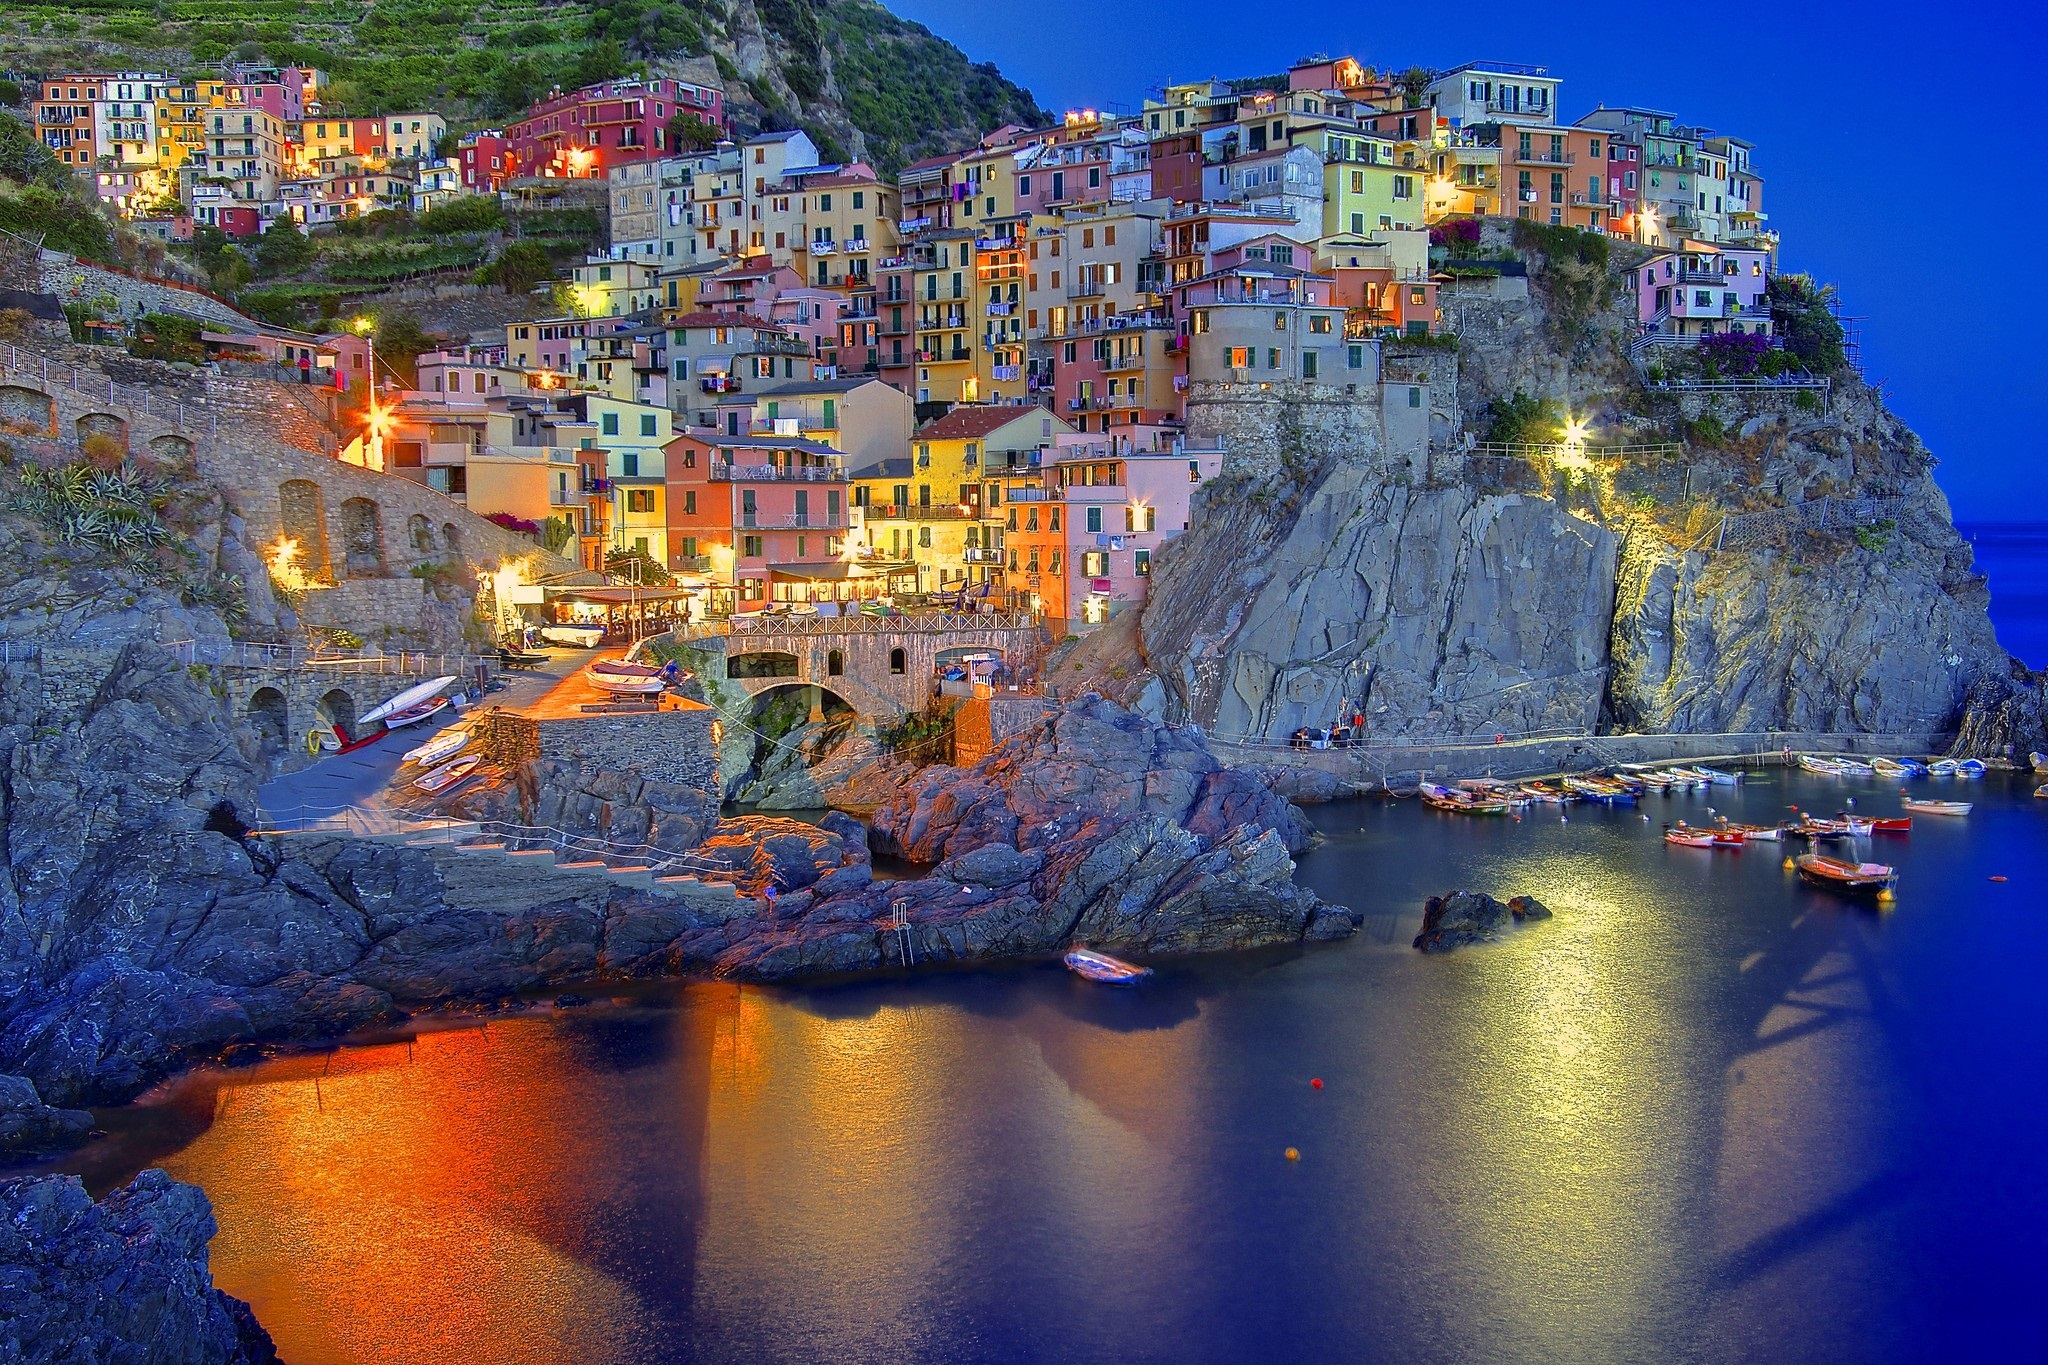 Amalfi Coast In Liguria, Italy Desktop Background